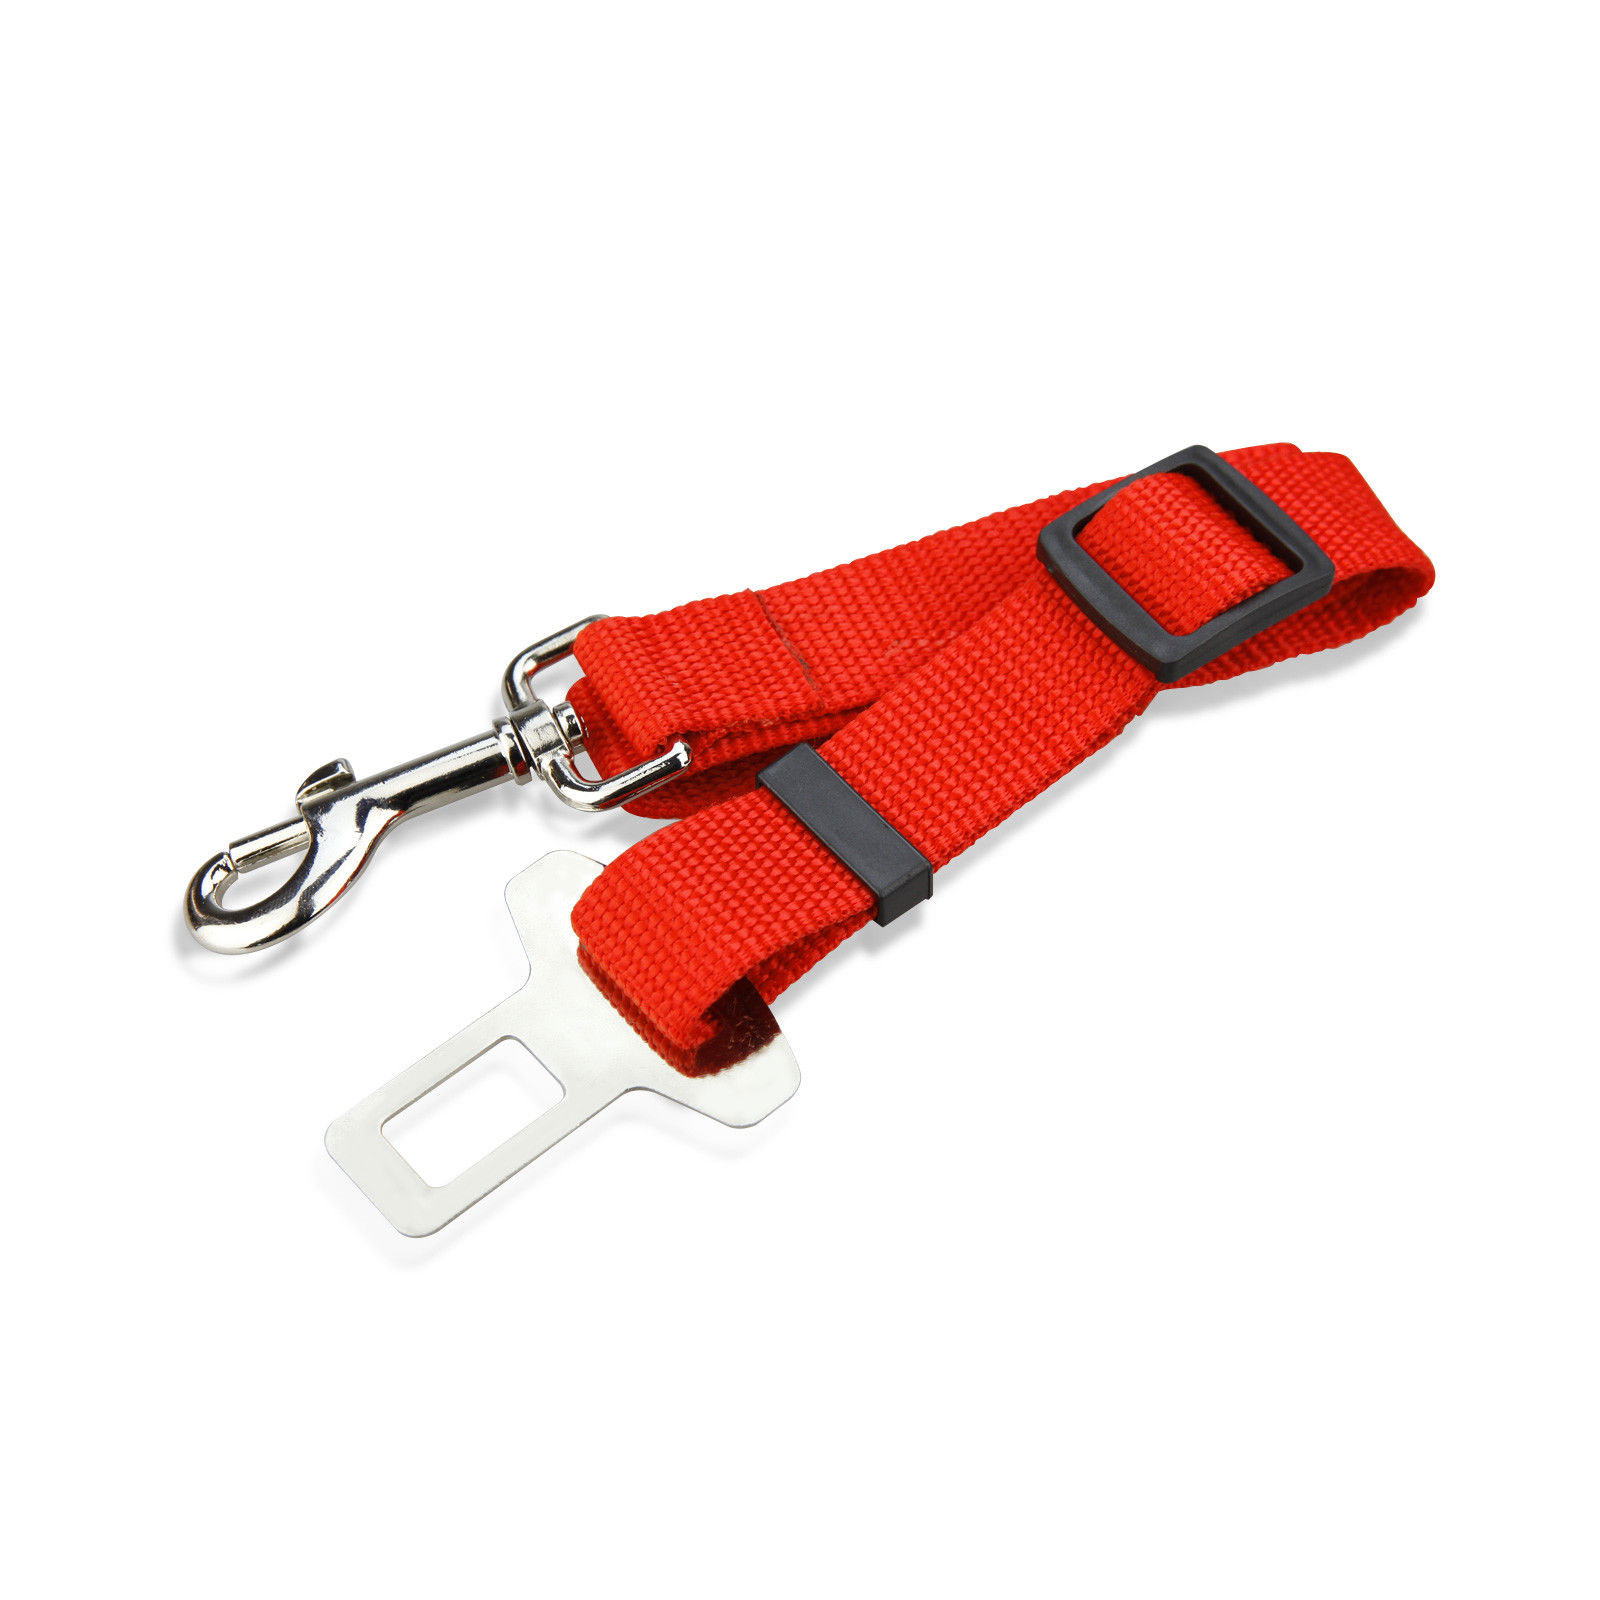 B967-Seat-Belt-Pet-Seatbelt-Dog-Safety-Belt-Traction-Rope-Car-Vehicle-Collors